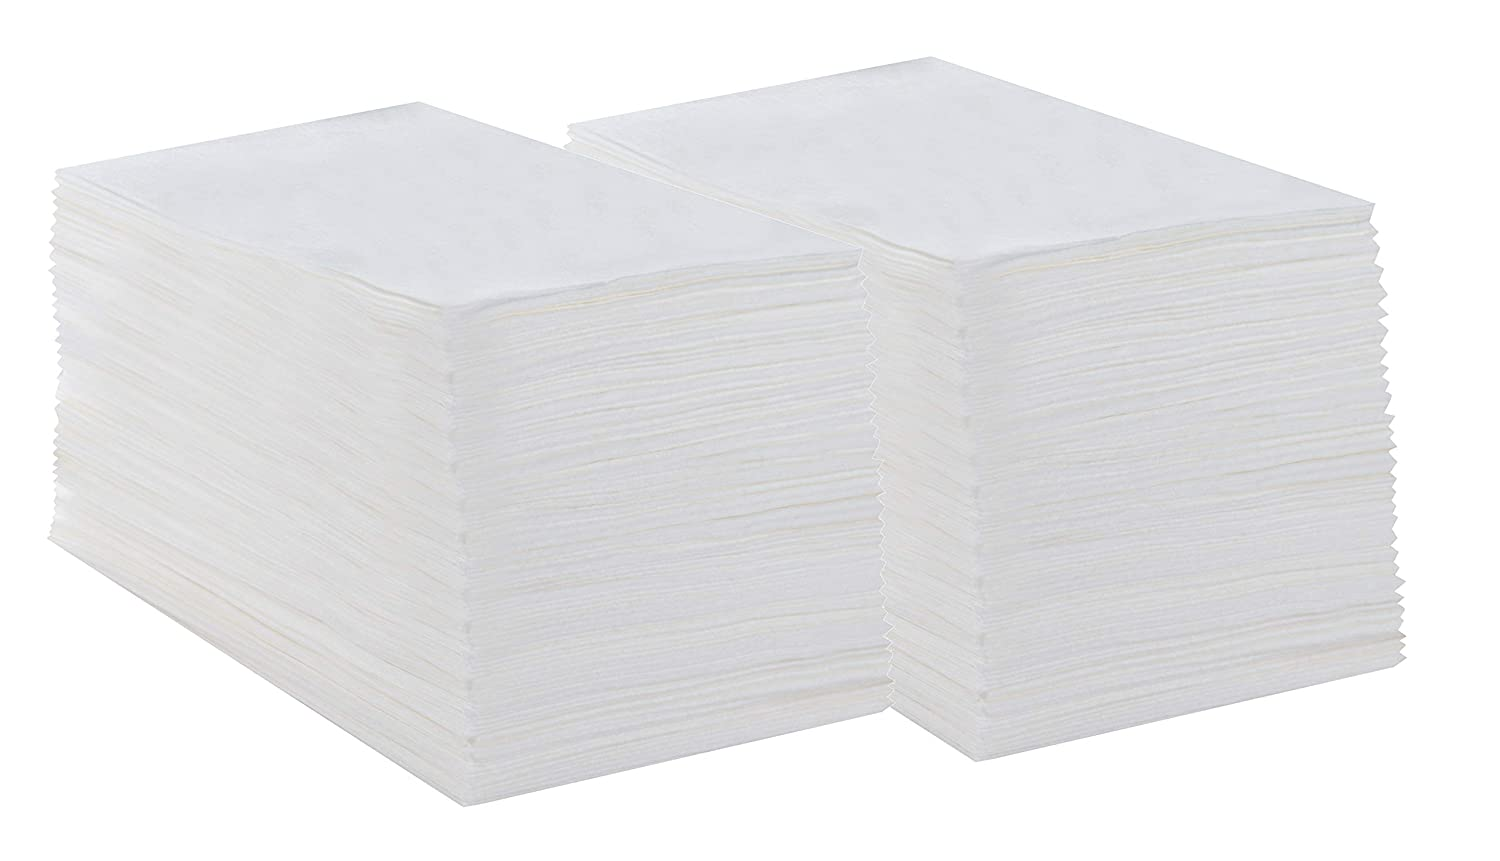 Disposable Guest Towels Linen-Feel Hand Napkins for Hotel 100-Pack Cloth-Like Tissue Paper Party Restaurant Bathroom Juvale Kitchen Office Wedding